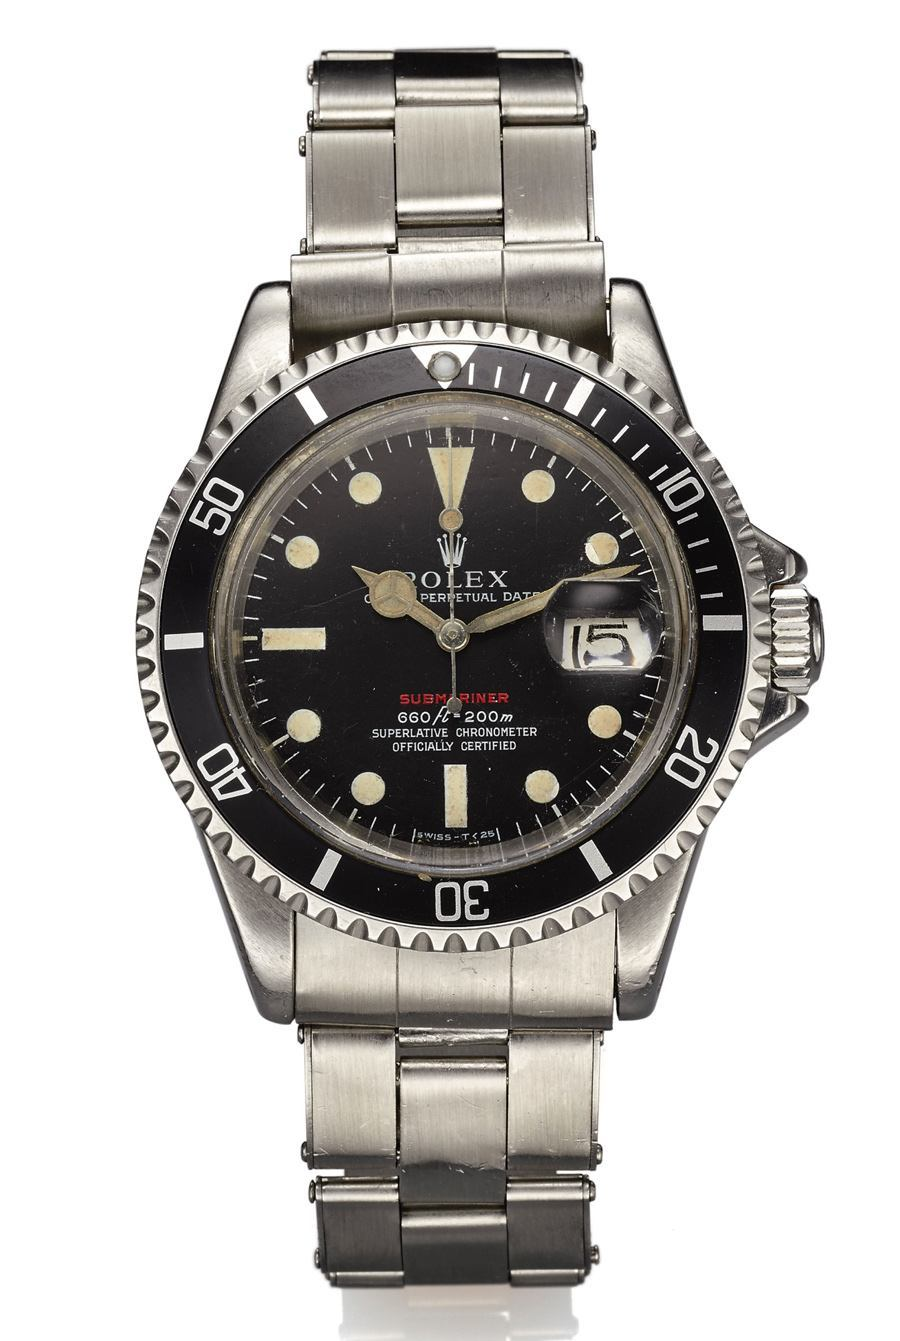 Rolex Red Submariner, versteigert bei Antiquorum in New York im Dezember 2015 für 11.250 US-Dollar